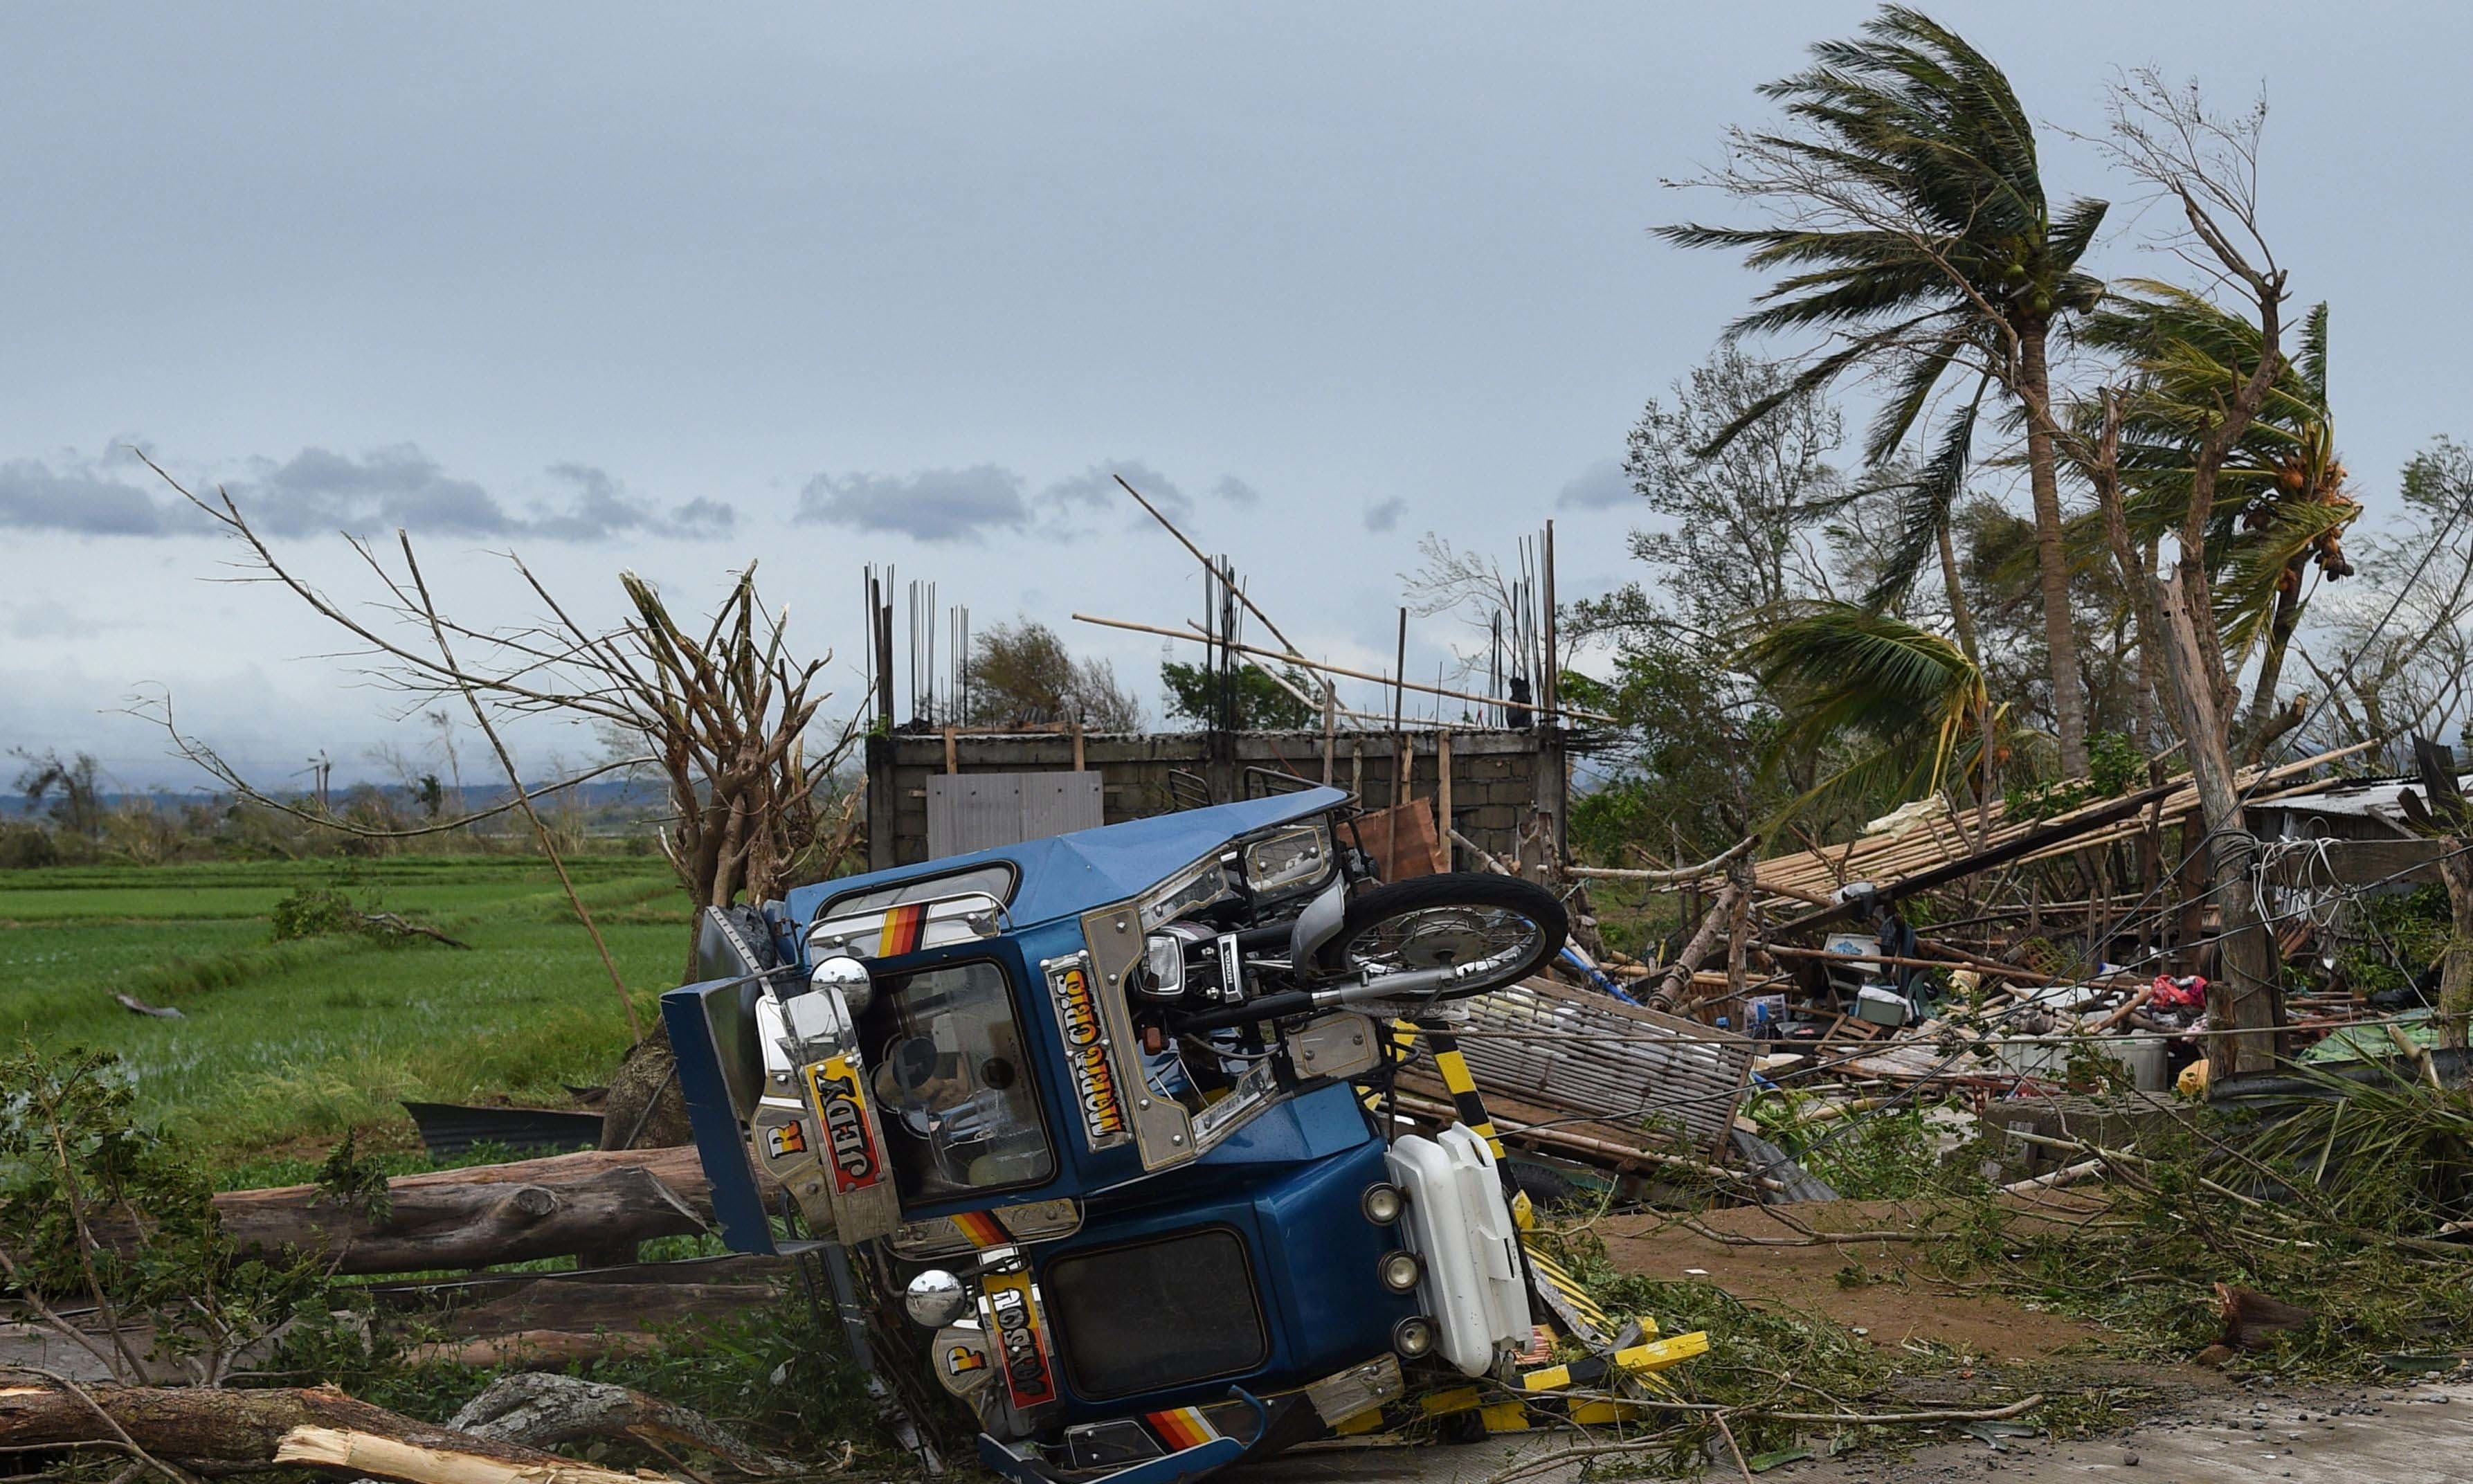 An overturned tricycle is seen next to a destroyed house after Super Typhoon Mangkhut hit the town of Alcala, Cagayan province. — AFP